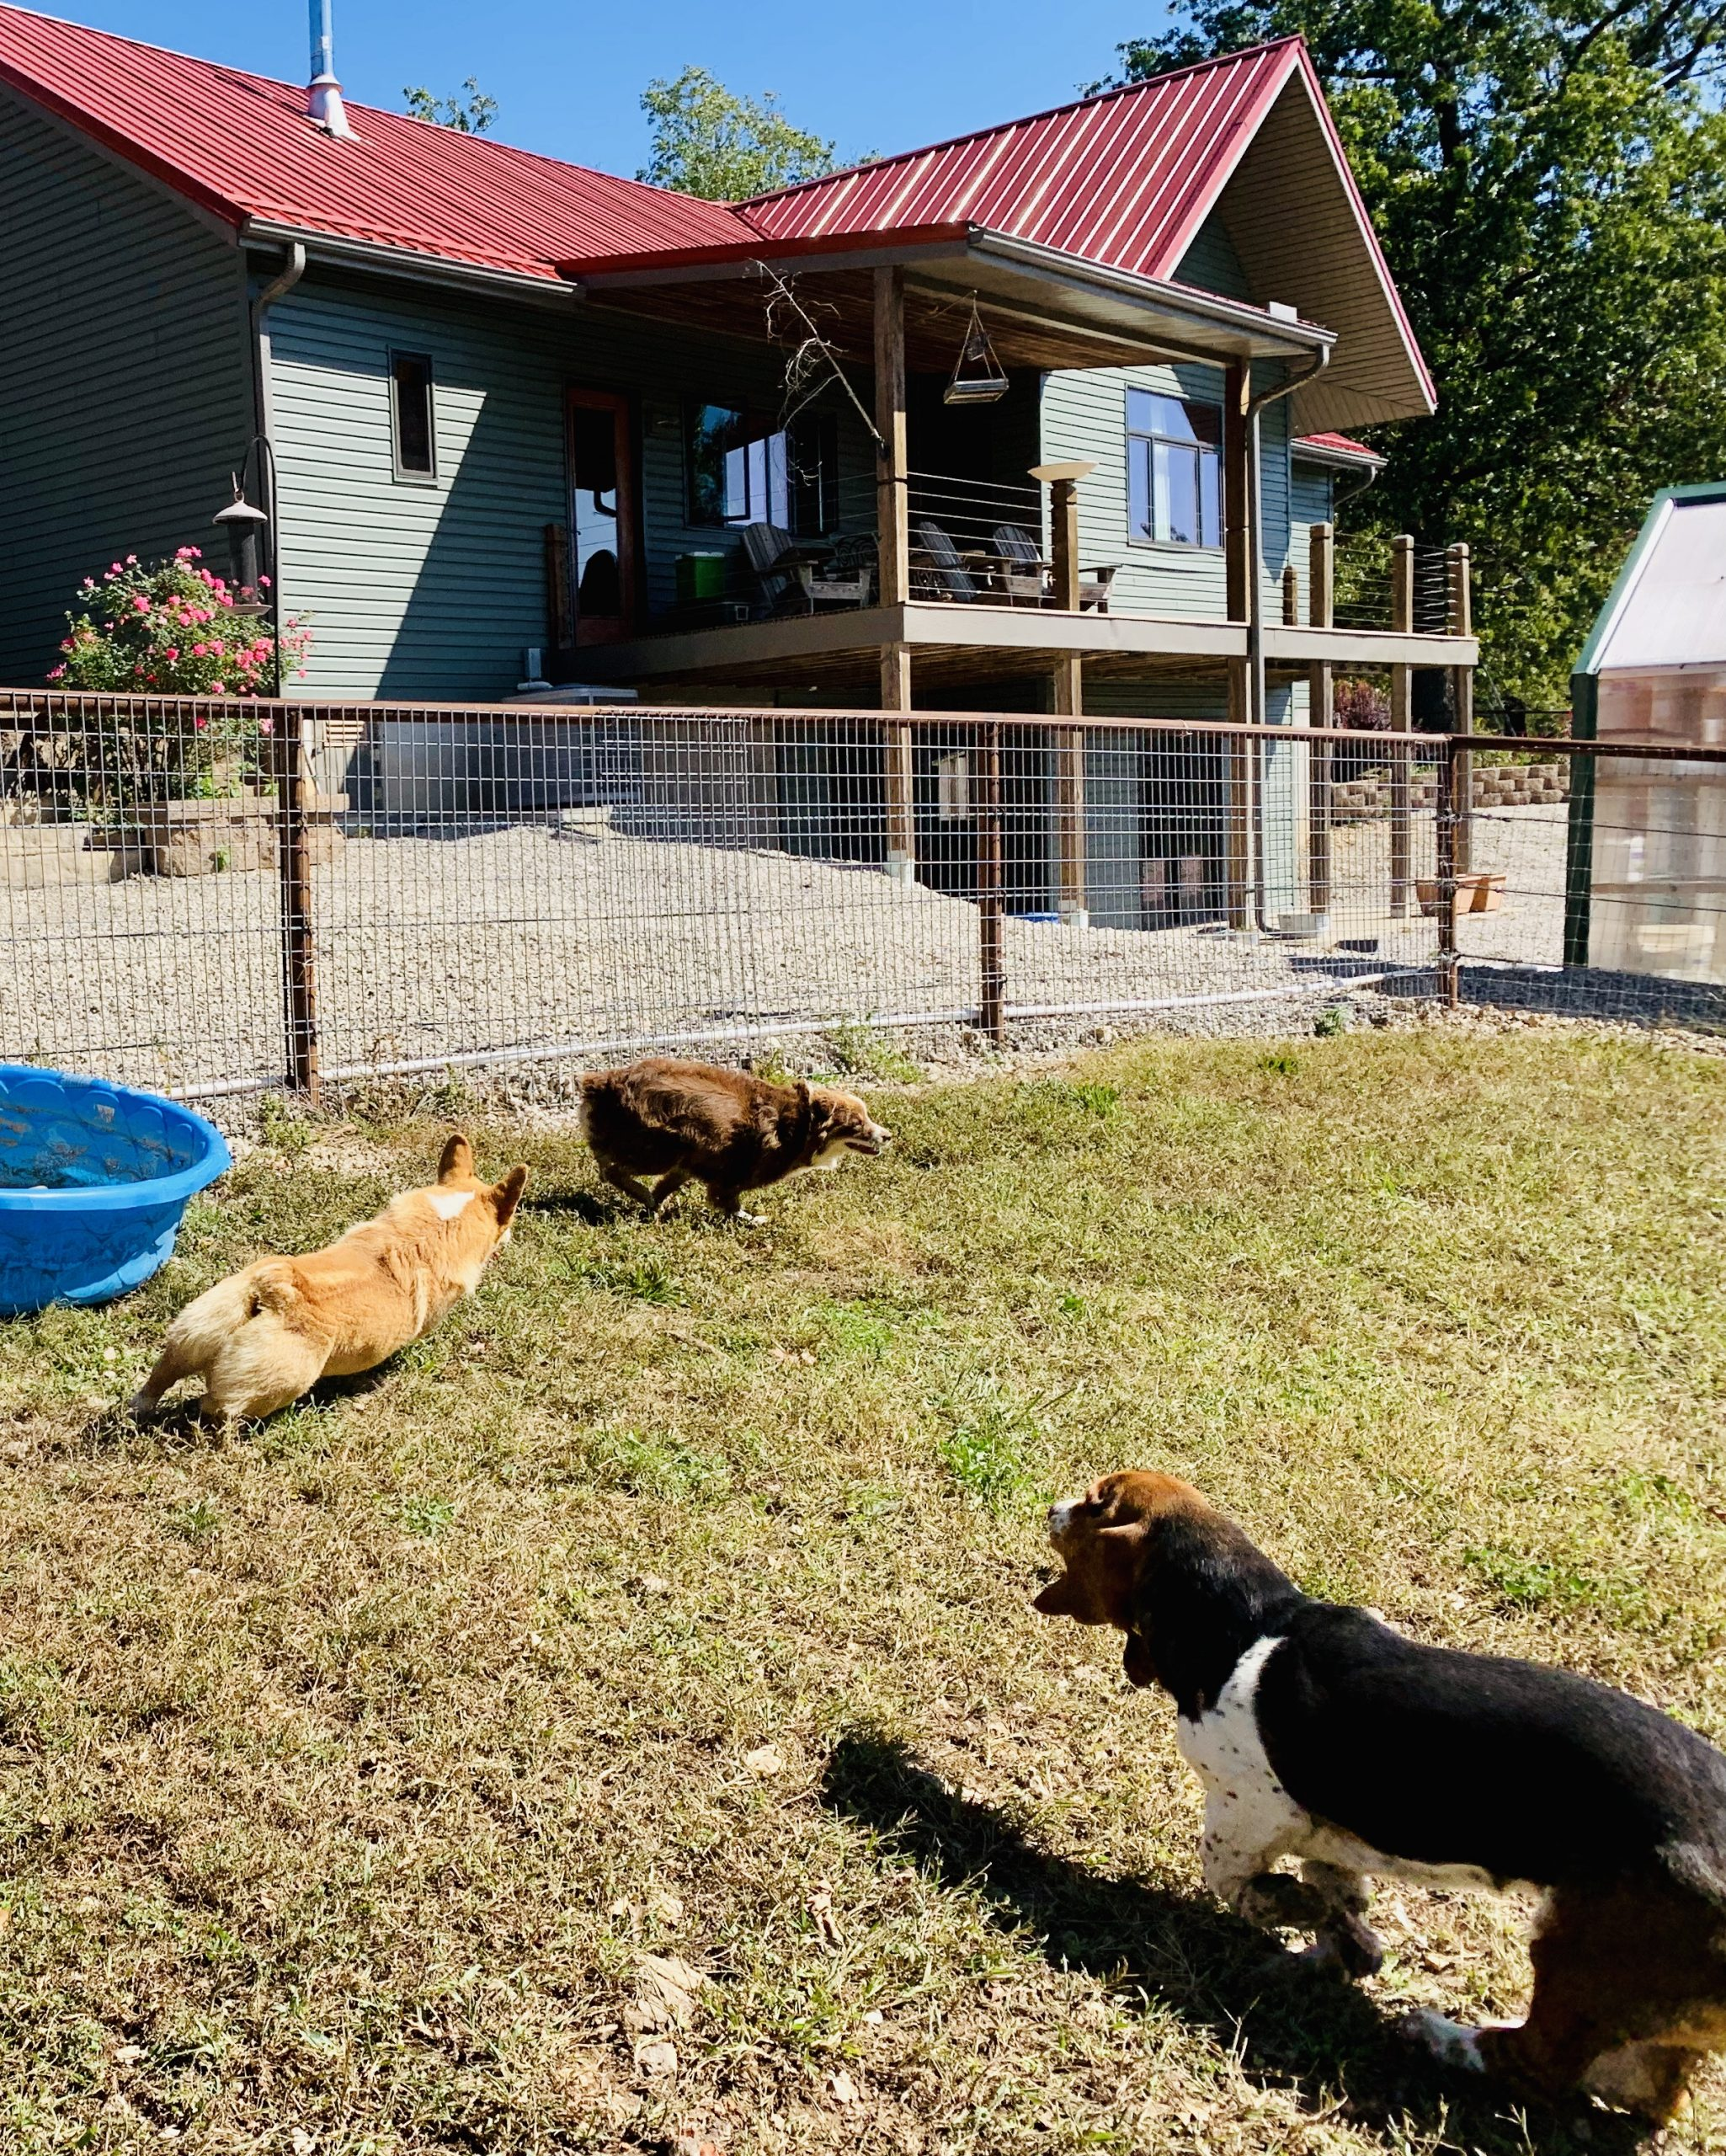 Dogs playing in yard